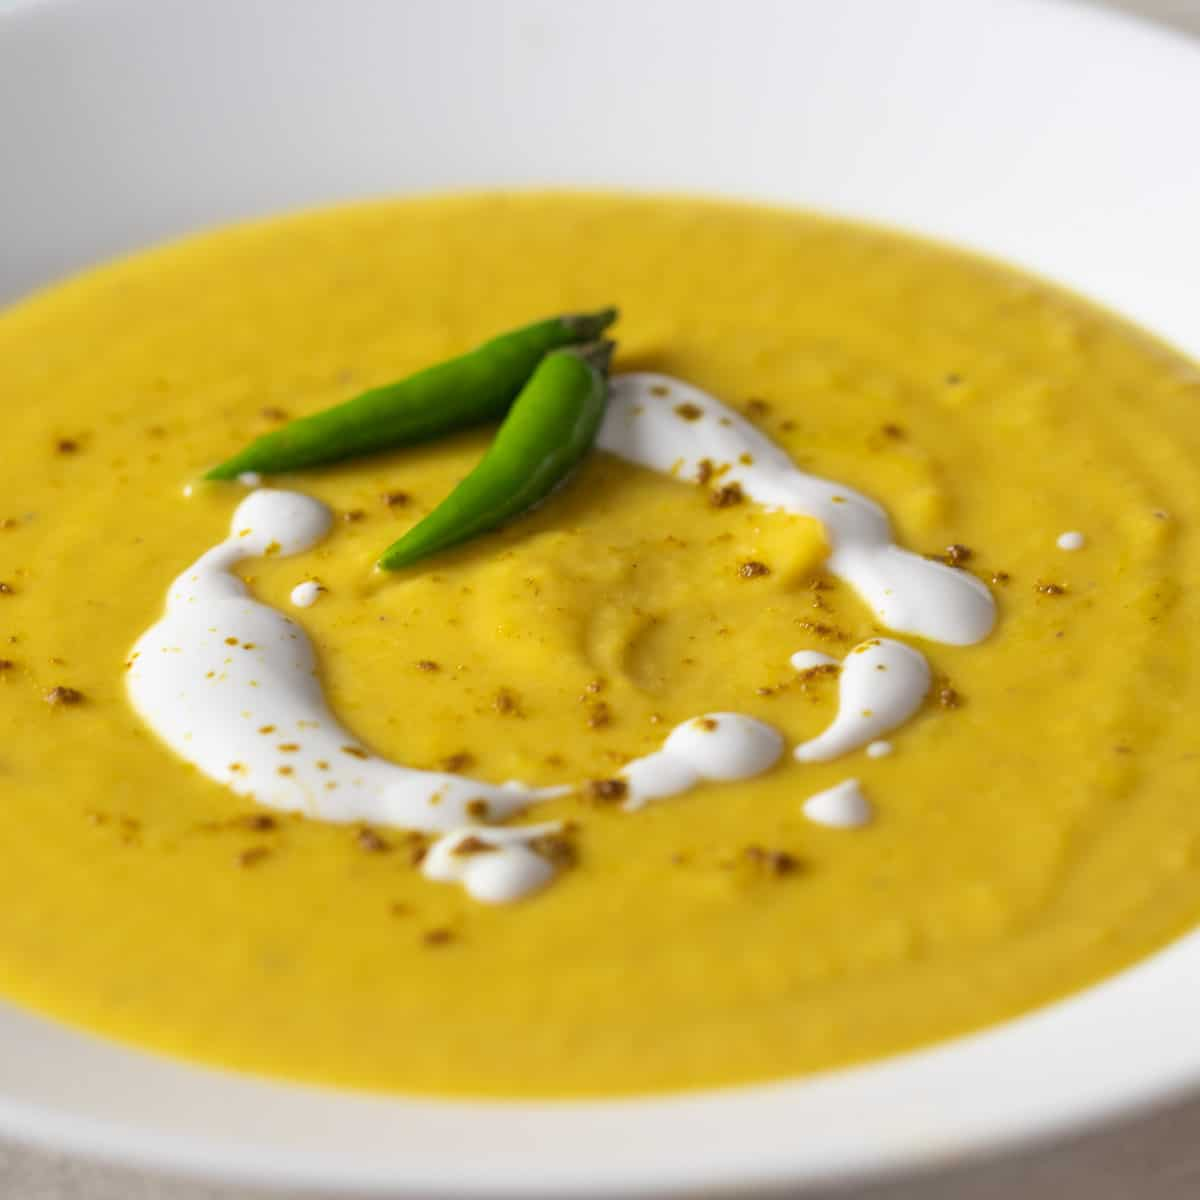 A closeup picture of a bowl of squash soup.